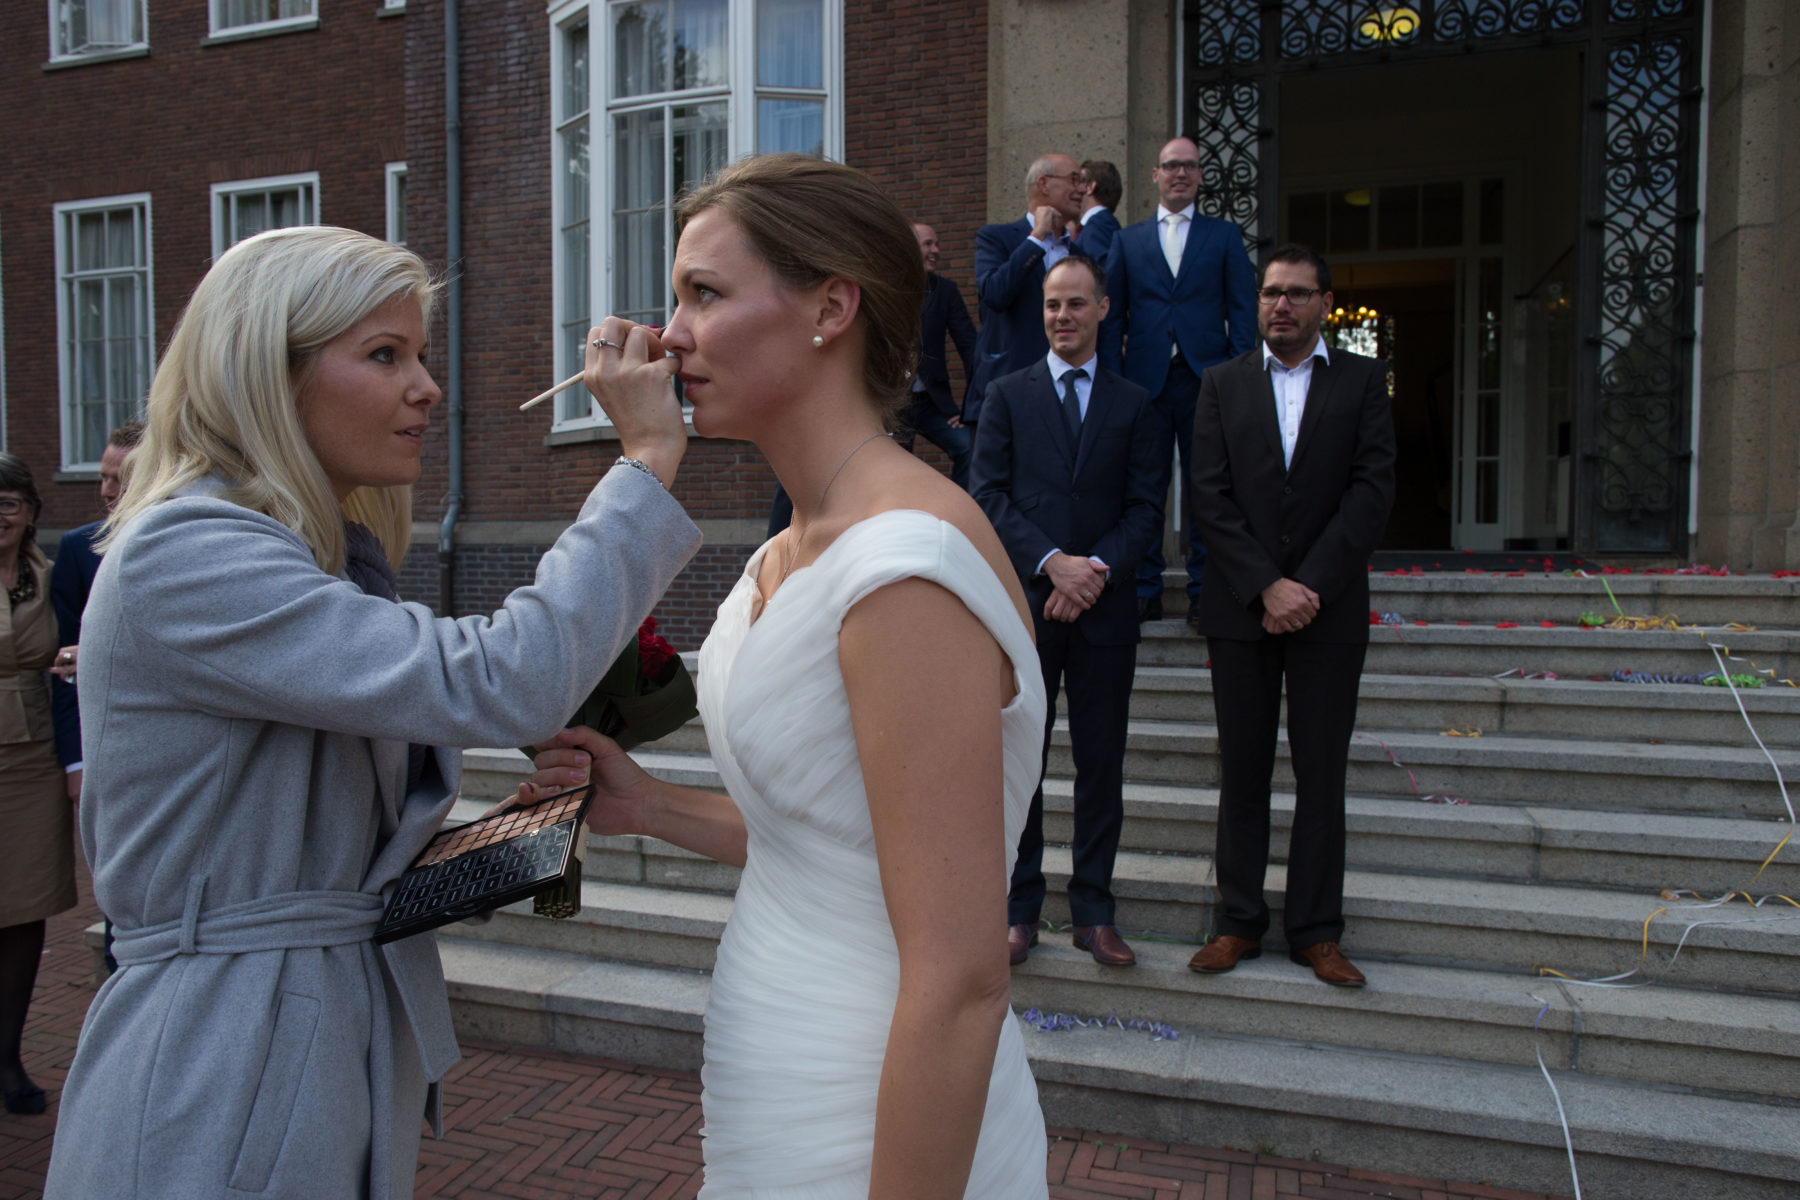 Destination Wedding: Amsterdam